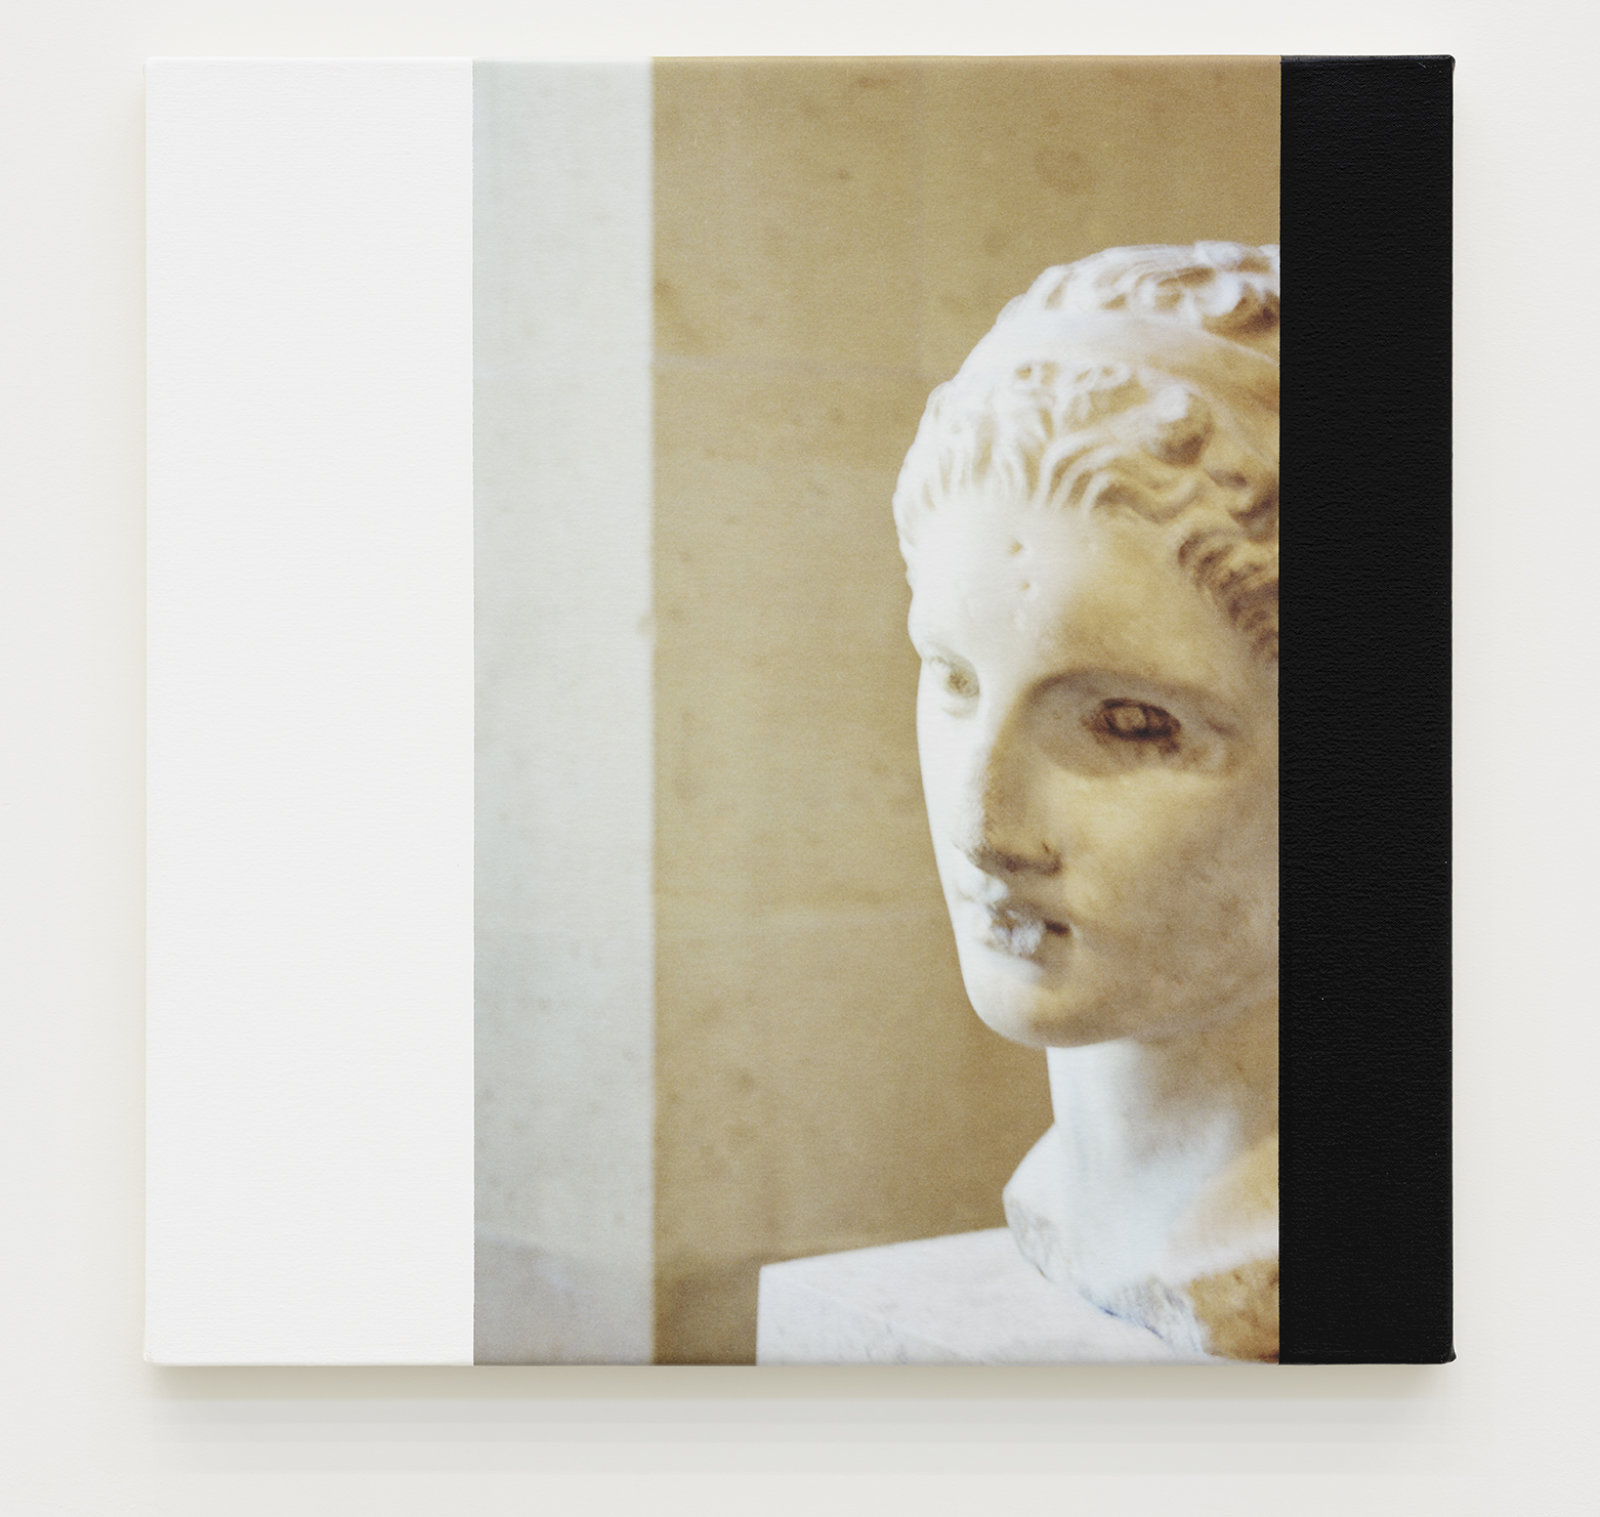 Ian Wallace, Roman Heads I–IV, 1990/2015, photolaminate with acrylic on canvas, 4 parts, each 24 x 24 in. (61 x 61 cm) by Ian Wallace